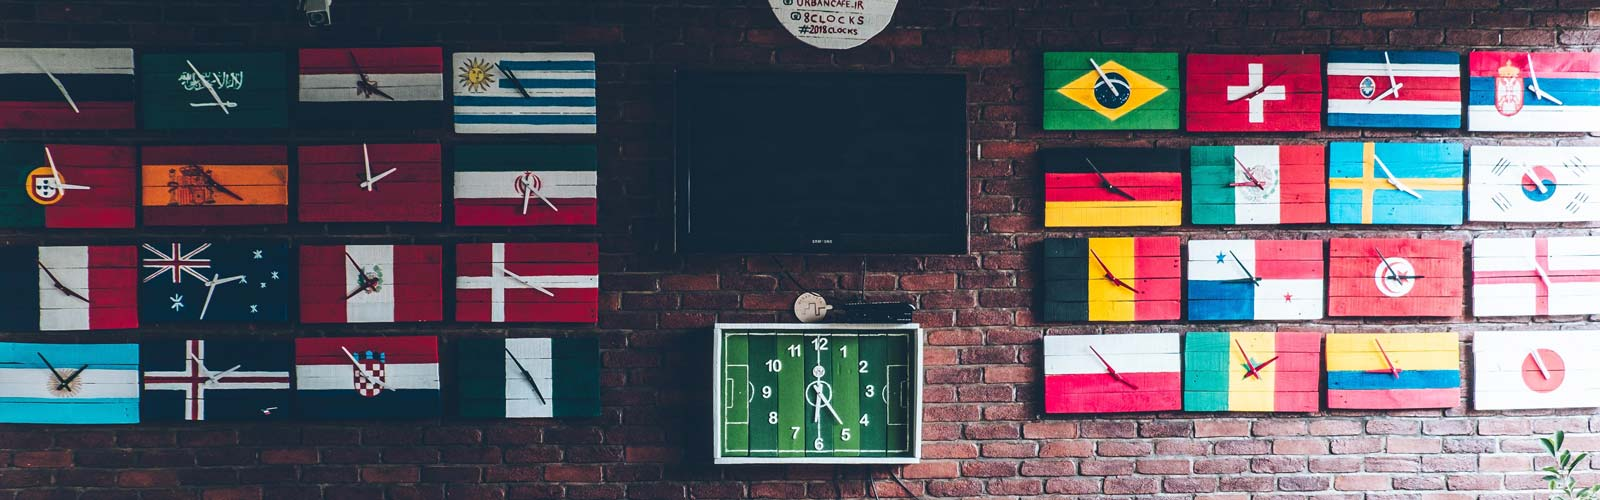 Creative media localization: What it is and why it matters